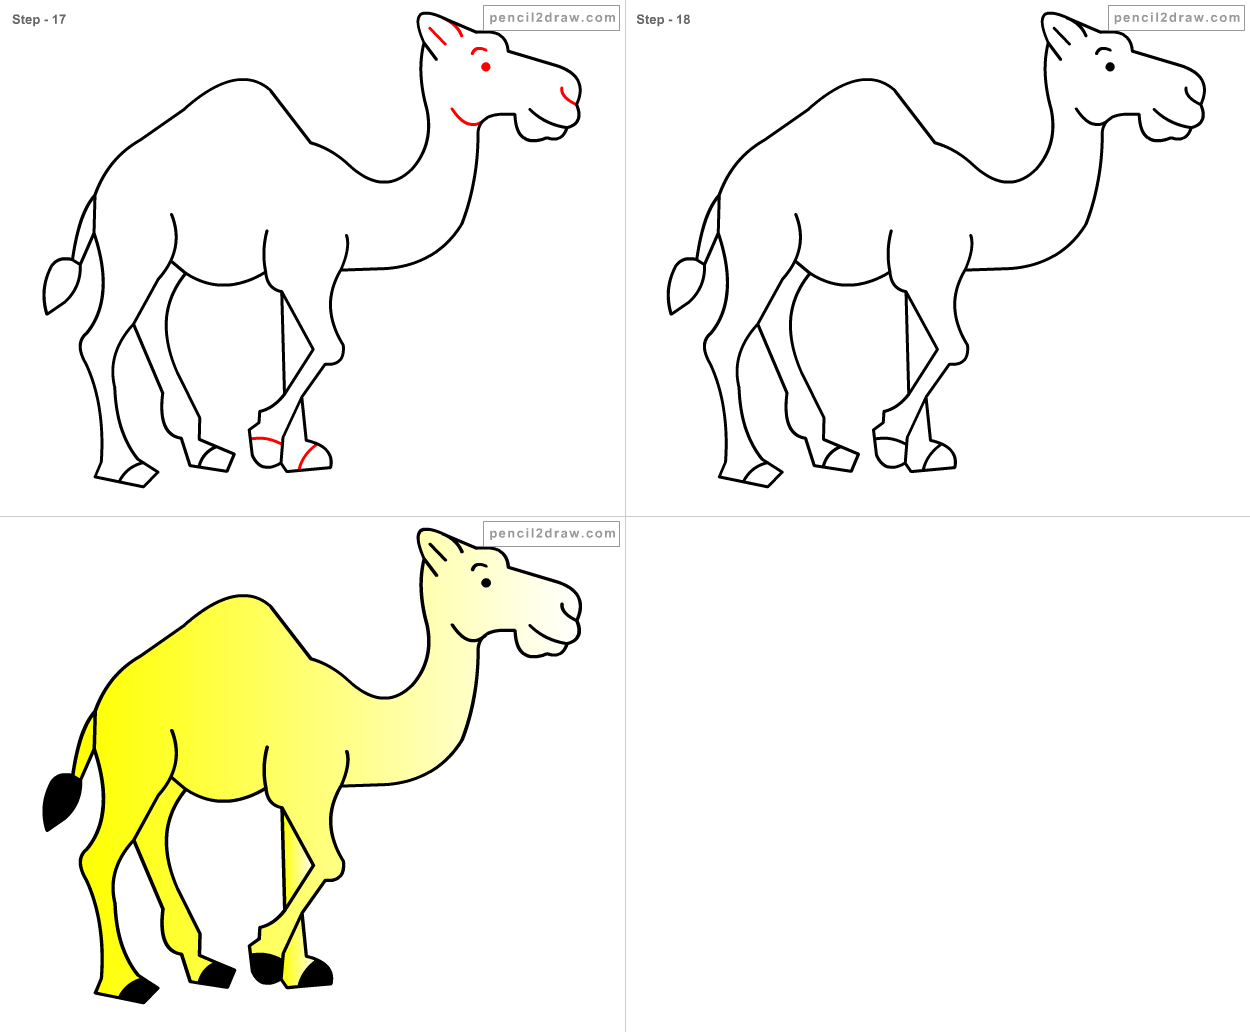 Fpencil how to draw cartoon camel step by step for How to make cartoon drawings step by step